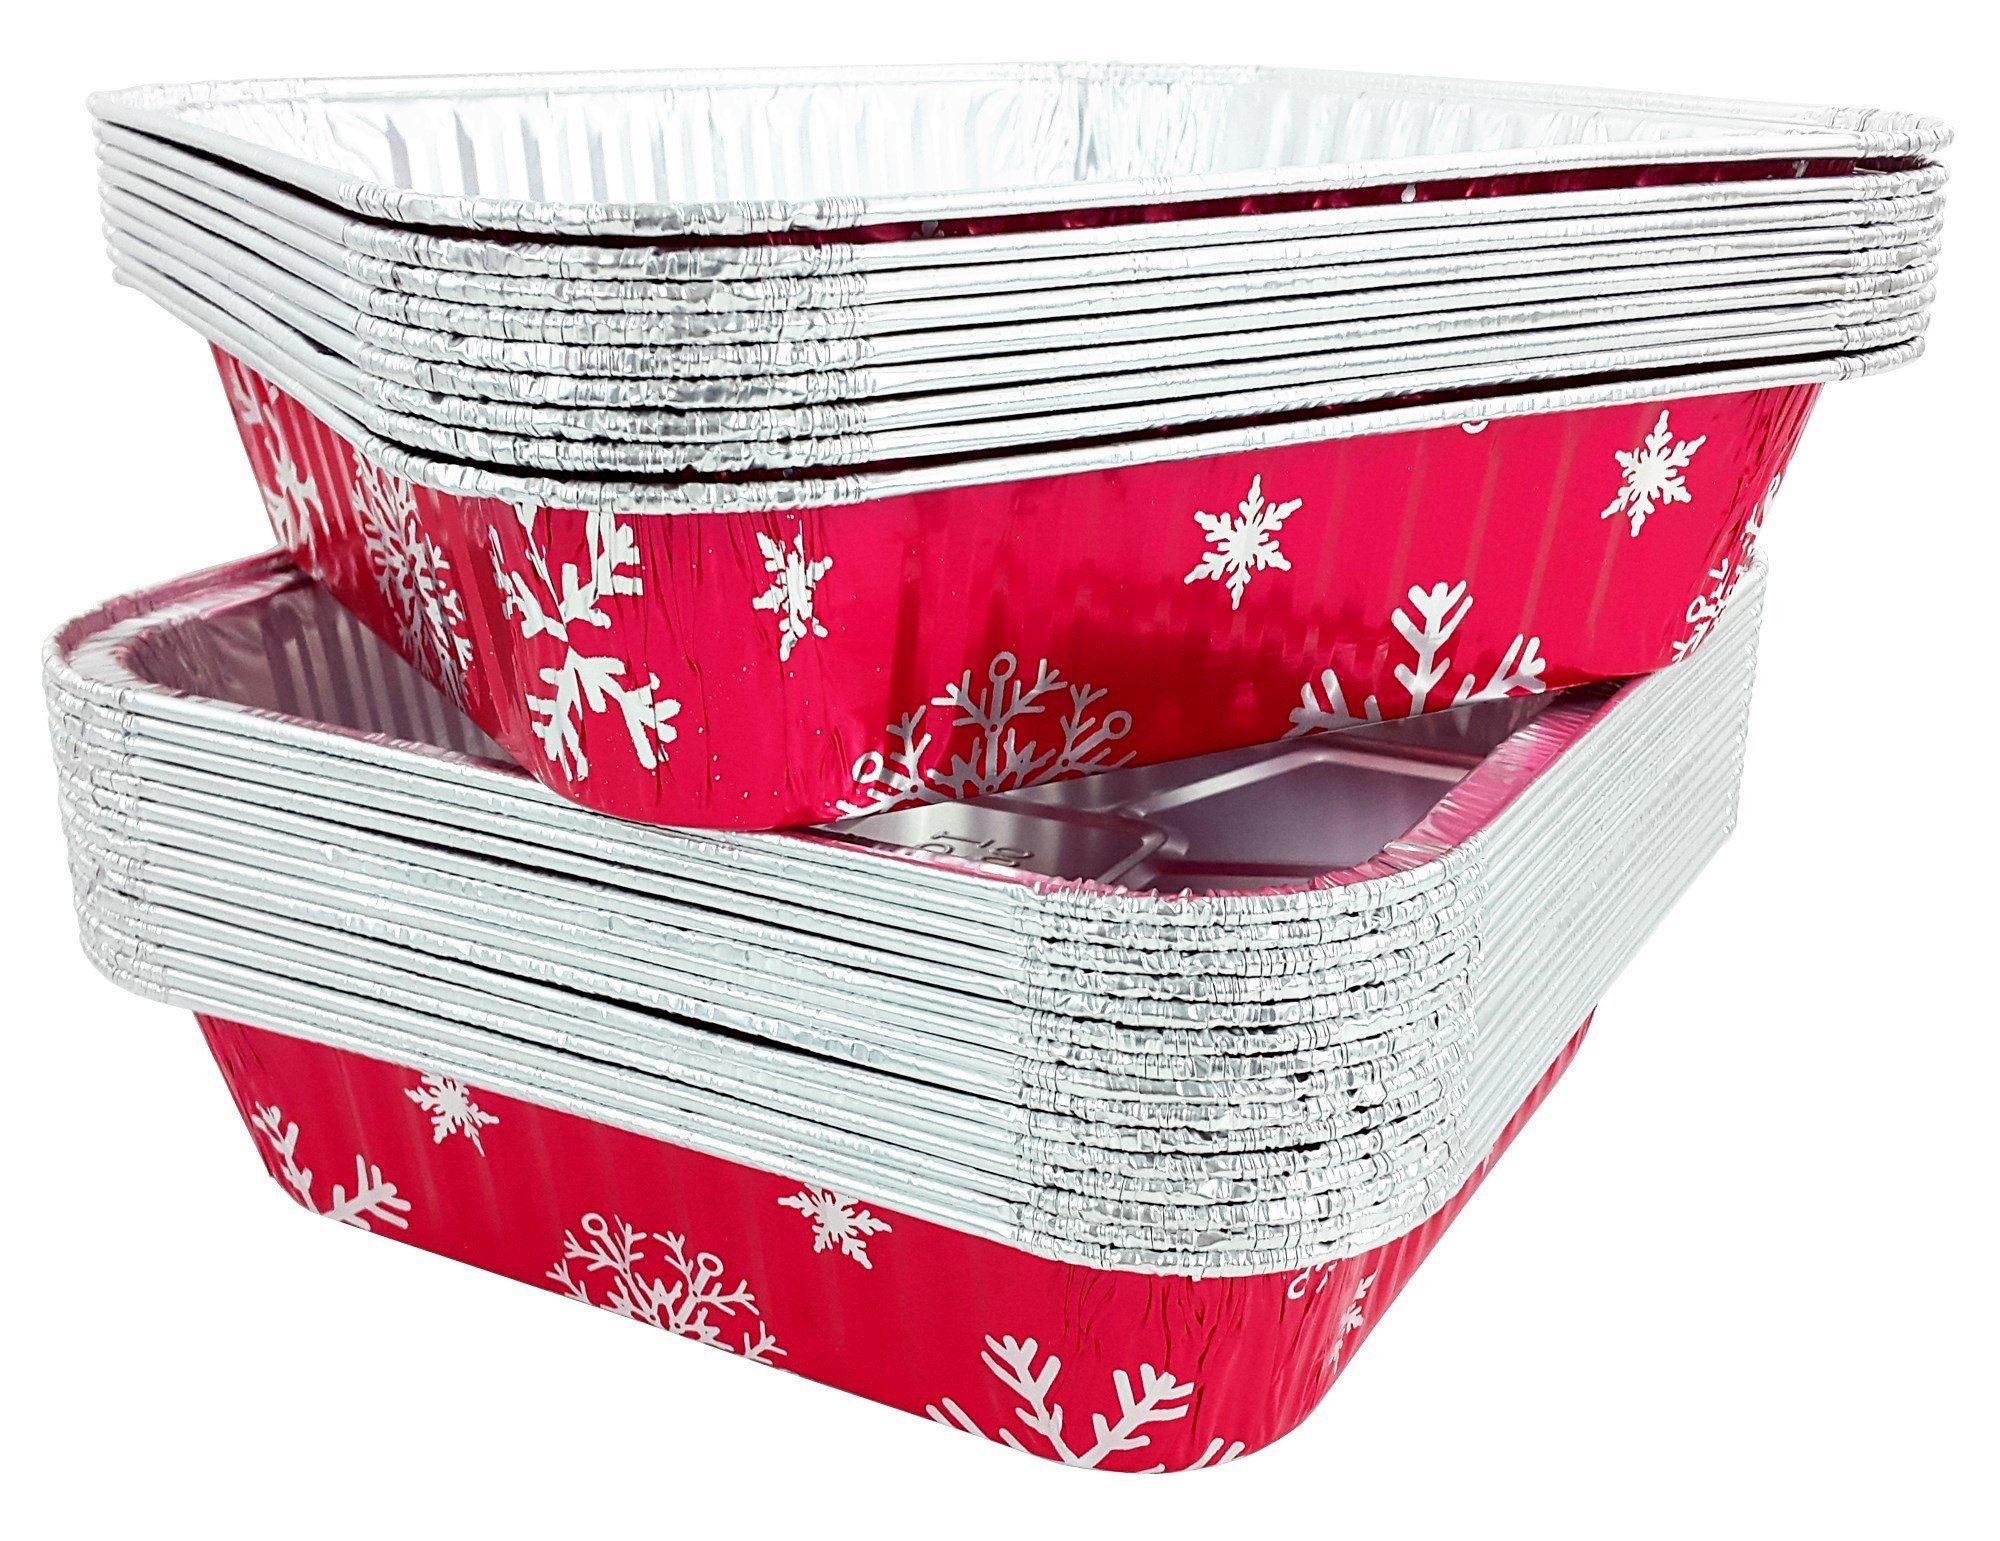 Pactogo Red Holiday Christmas Square Cake Aluminum Foil Pan w/Clear Dome Lid Disposable Baking Tins (Pack of 25 Sets) by PACTOGO